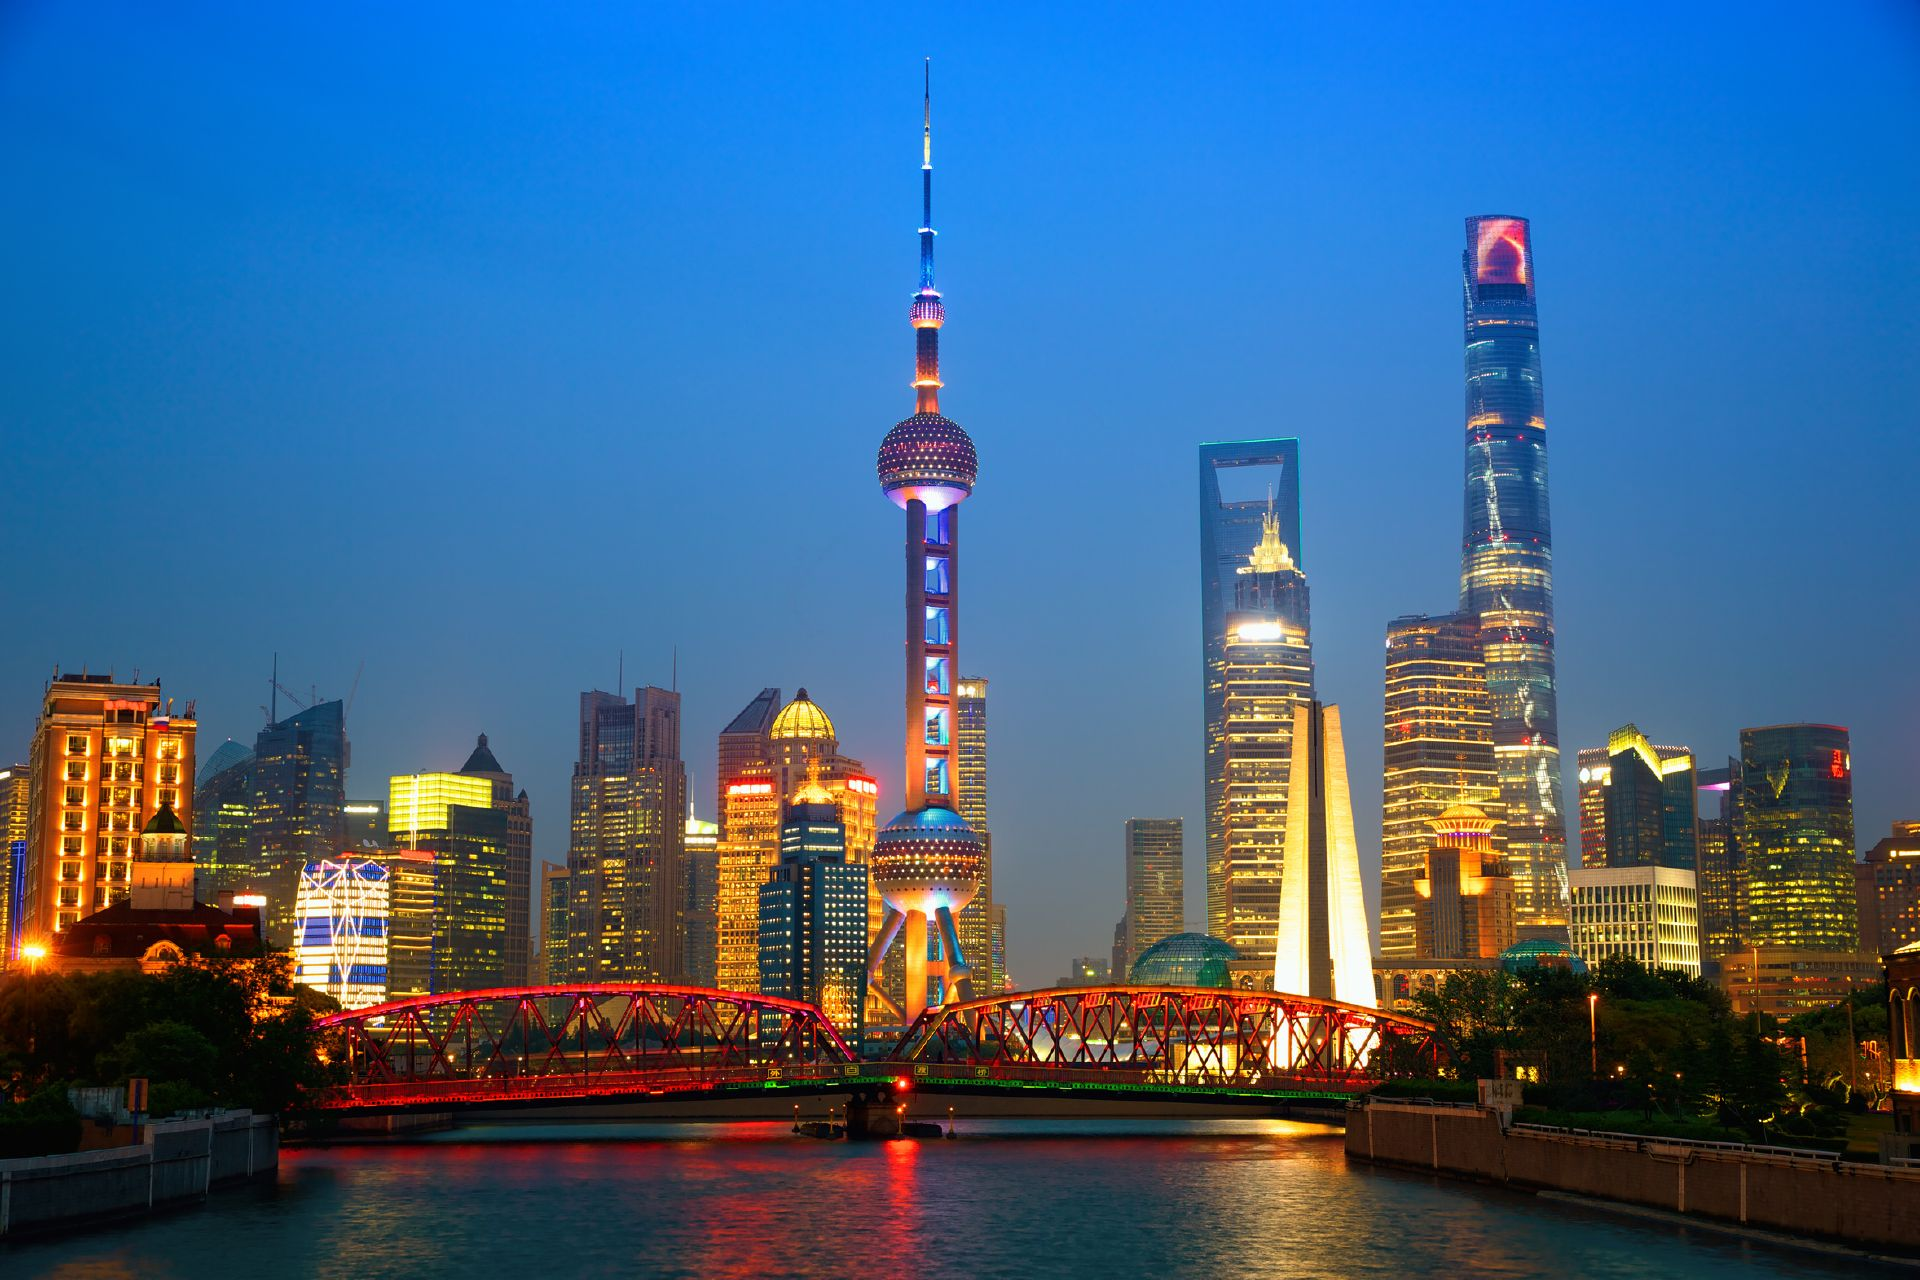 Shanghai skyline at dusk with illuminated Waibaidu bridge